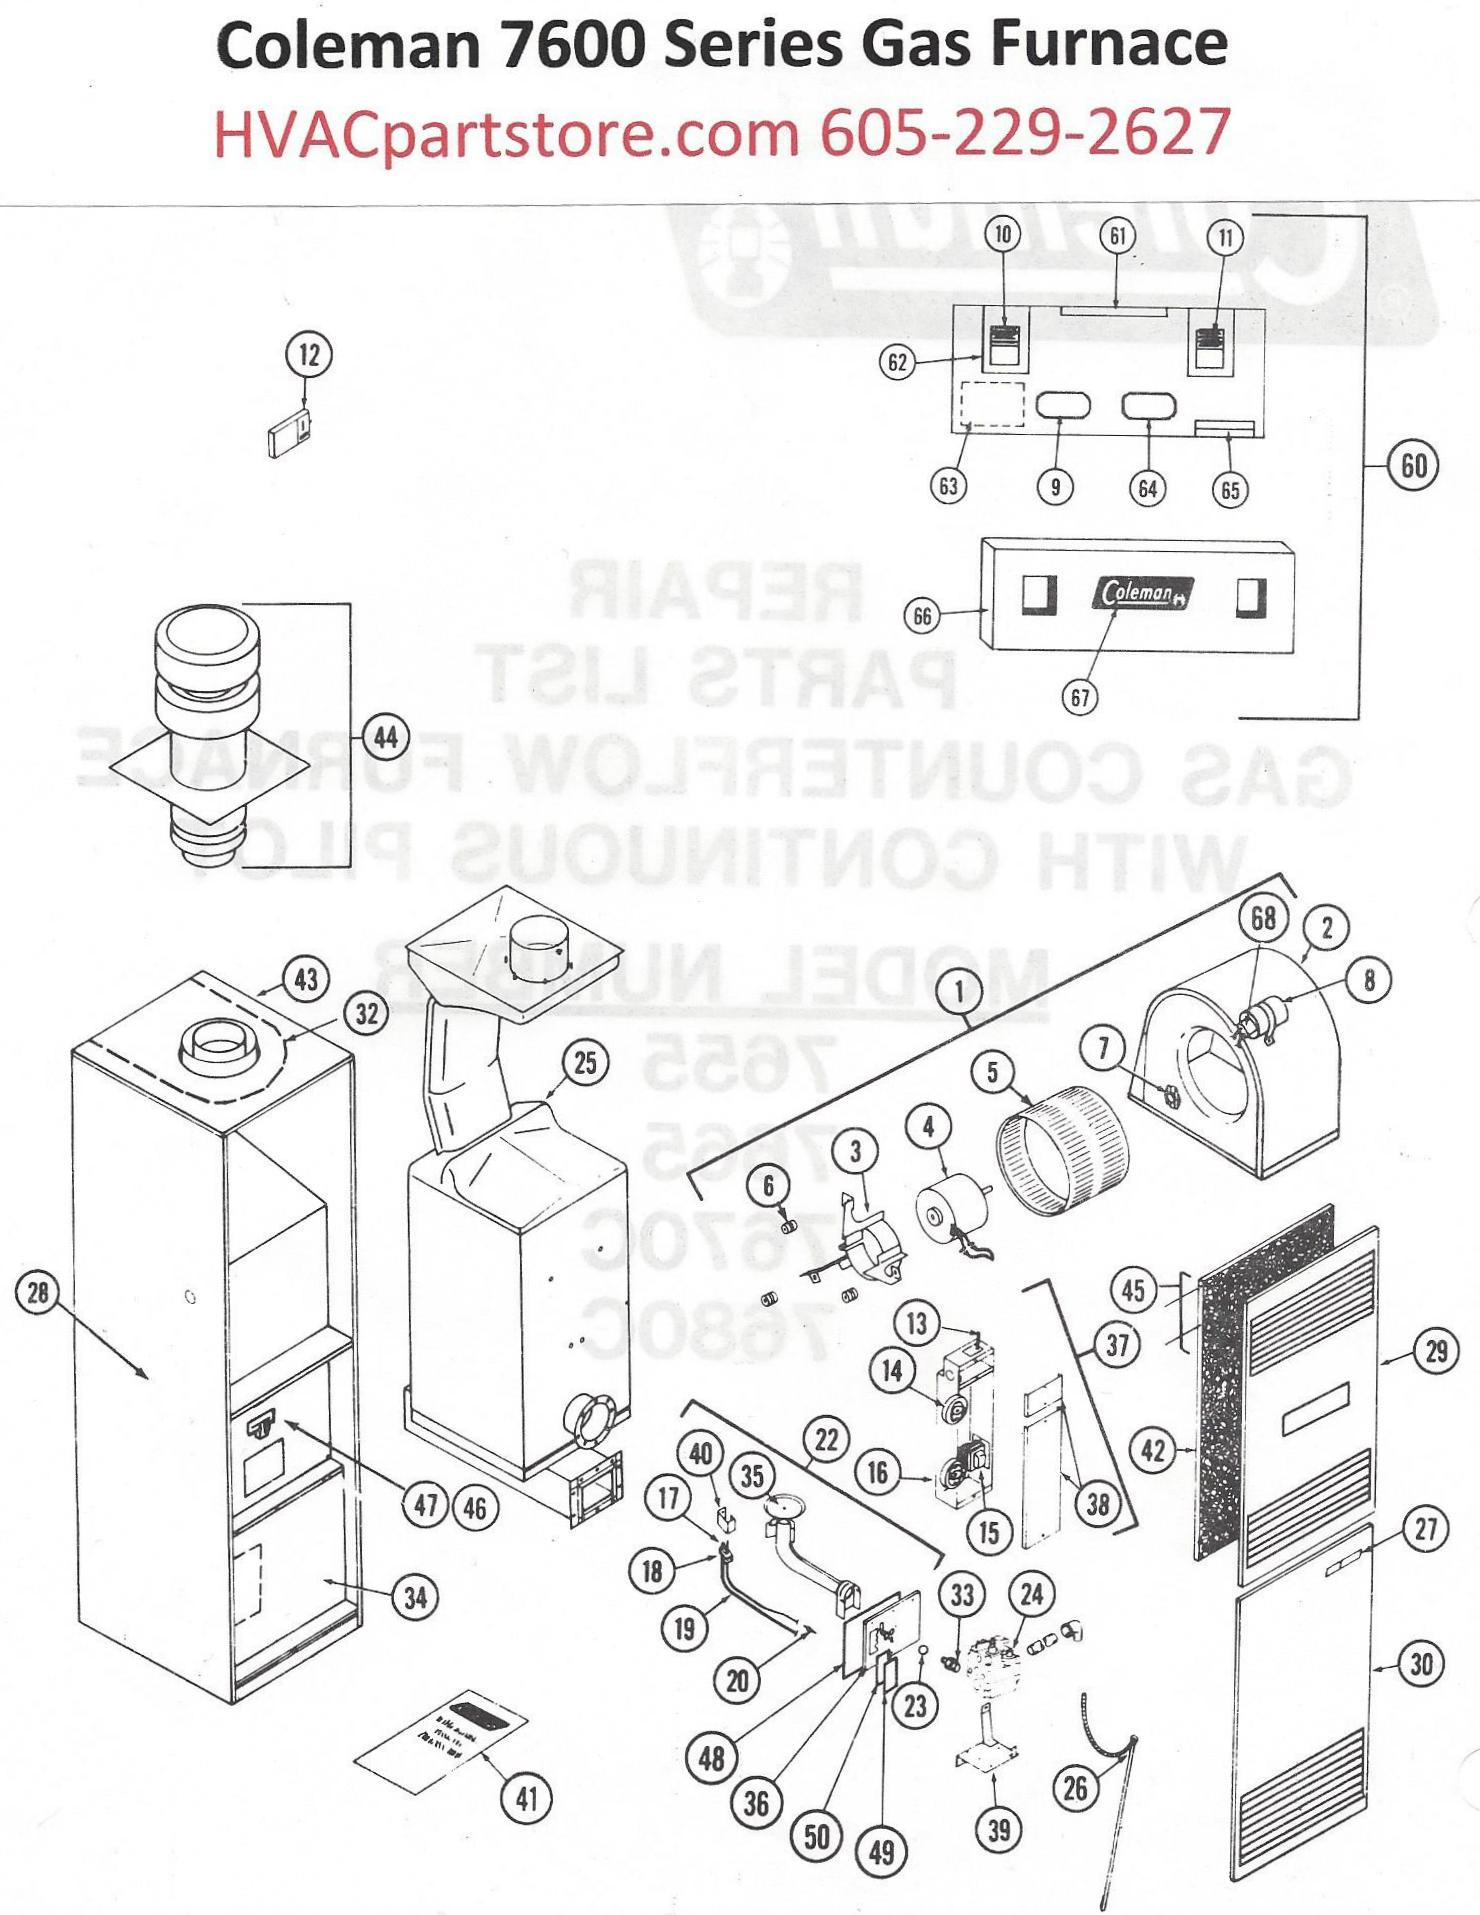 Wiring Diagram Coleman Furnace 7665 856 Data Older Sequecer 7655 Gas Parts Hvacpartstore Electric Sequencer